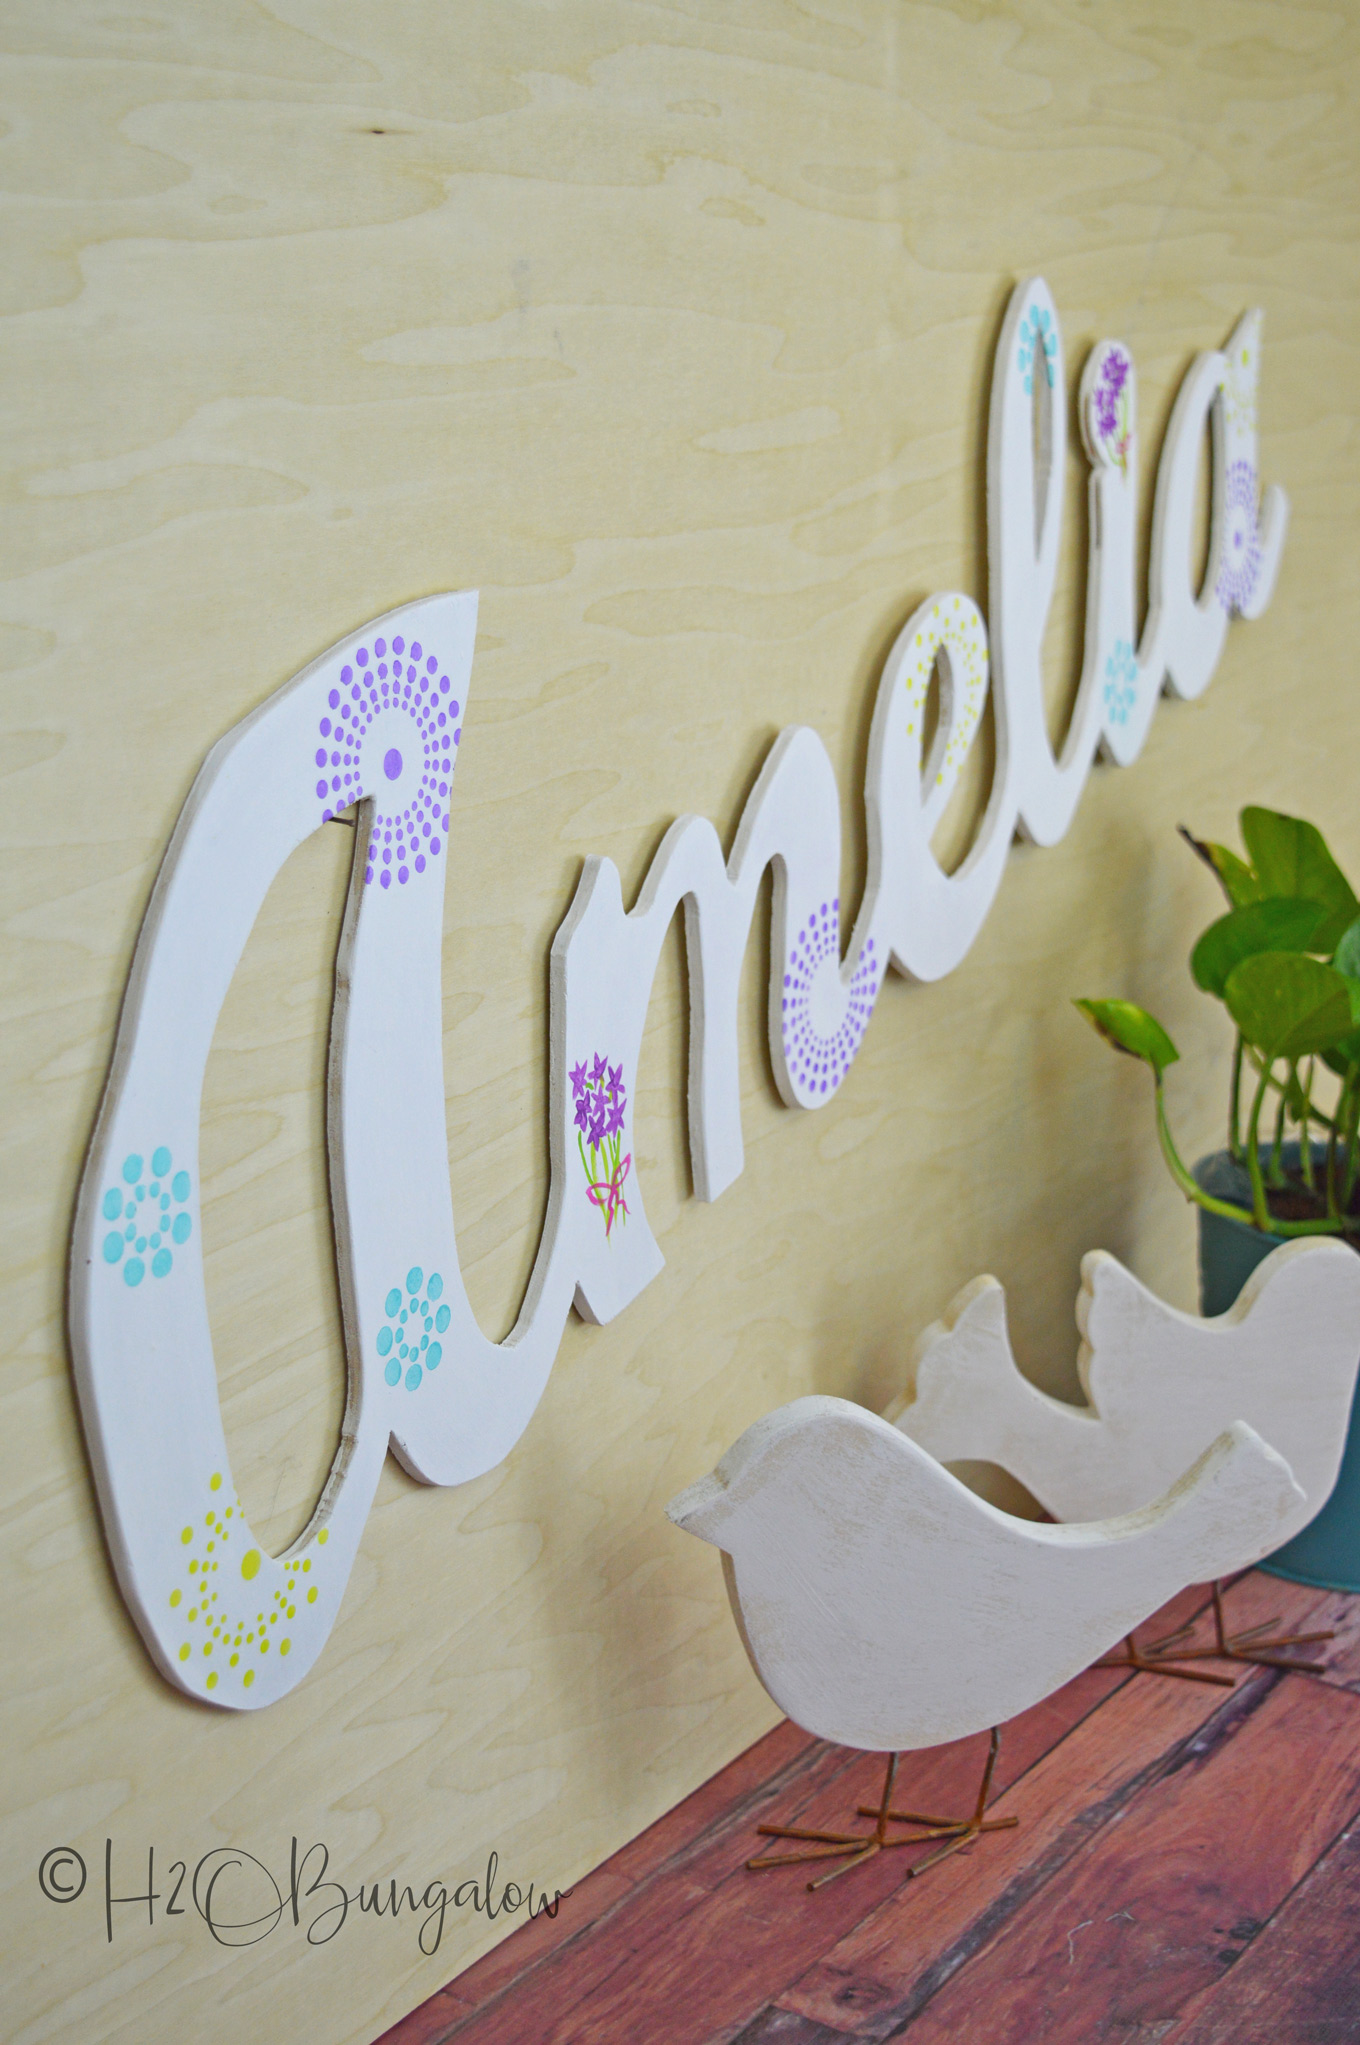 "Tutorial to make a DIY large wood name cut out. Easy project to make using a 1/4"" piece of scrap plywood, a jigsaw and a palm sander.  I've cut large script letters out of wood before and have a good tutorial which I link to below.  This post shares more tips for making clean cuts when cutting out words with a jigsaw."